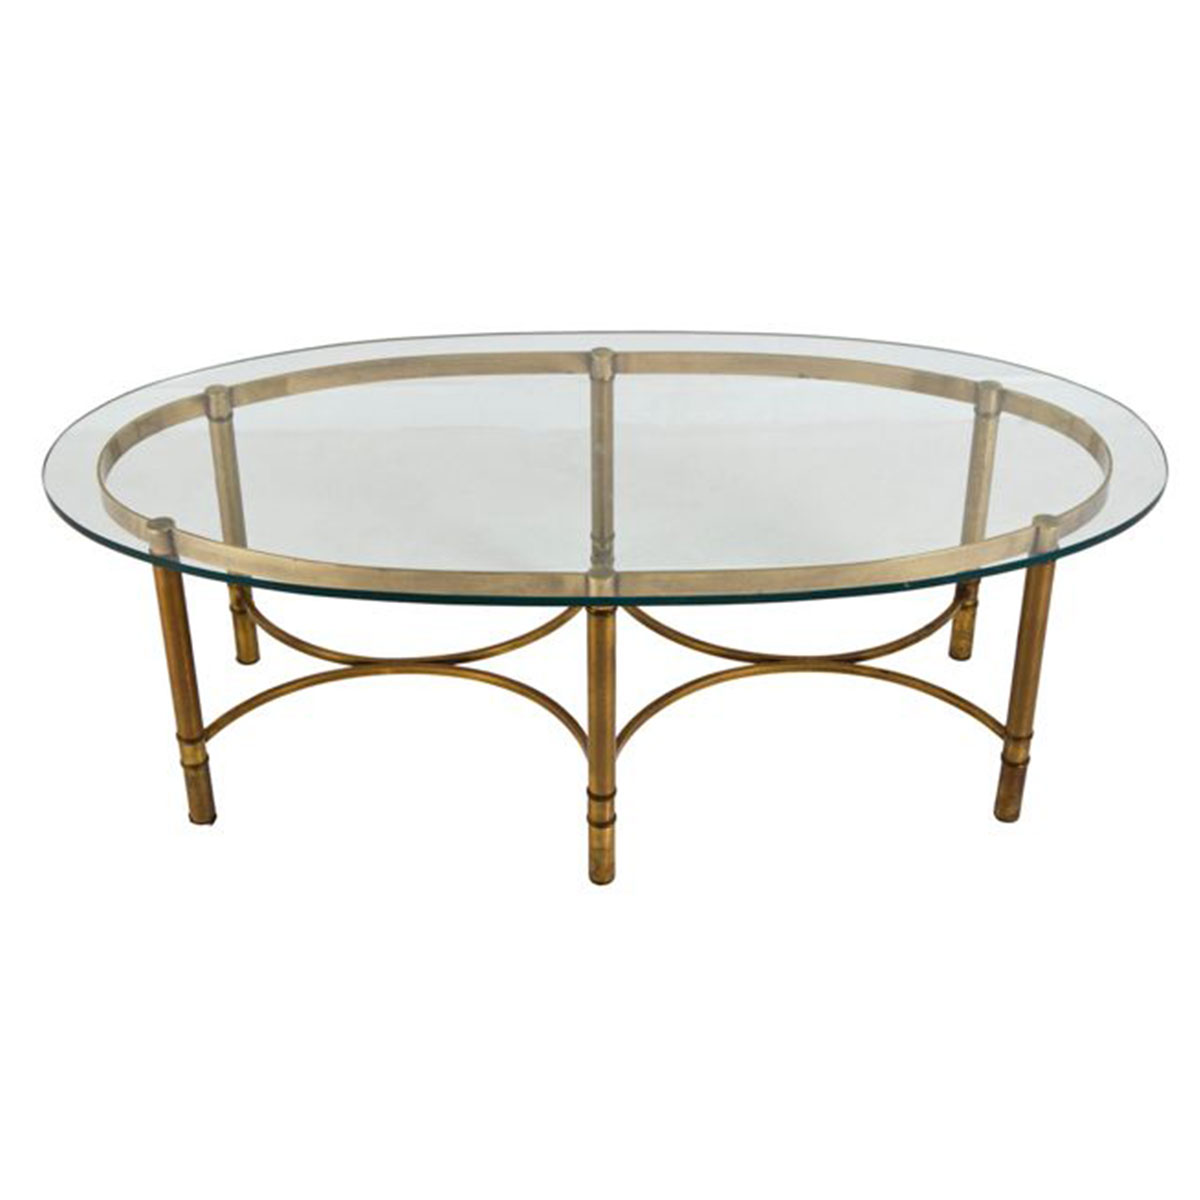 LaBarge Oval Glass and Brass Glamorous Cocktail Table